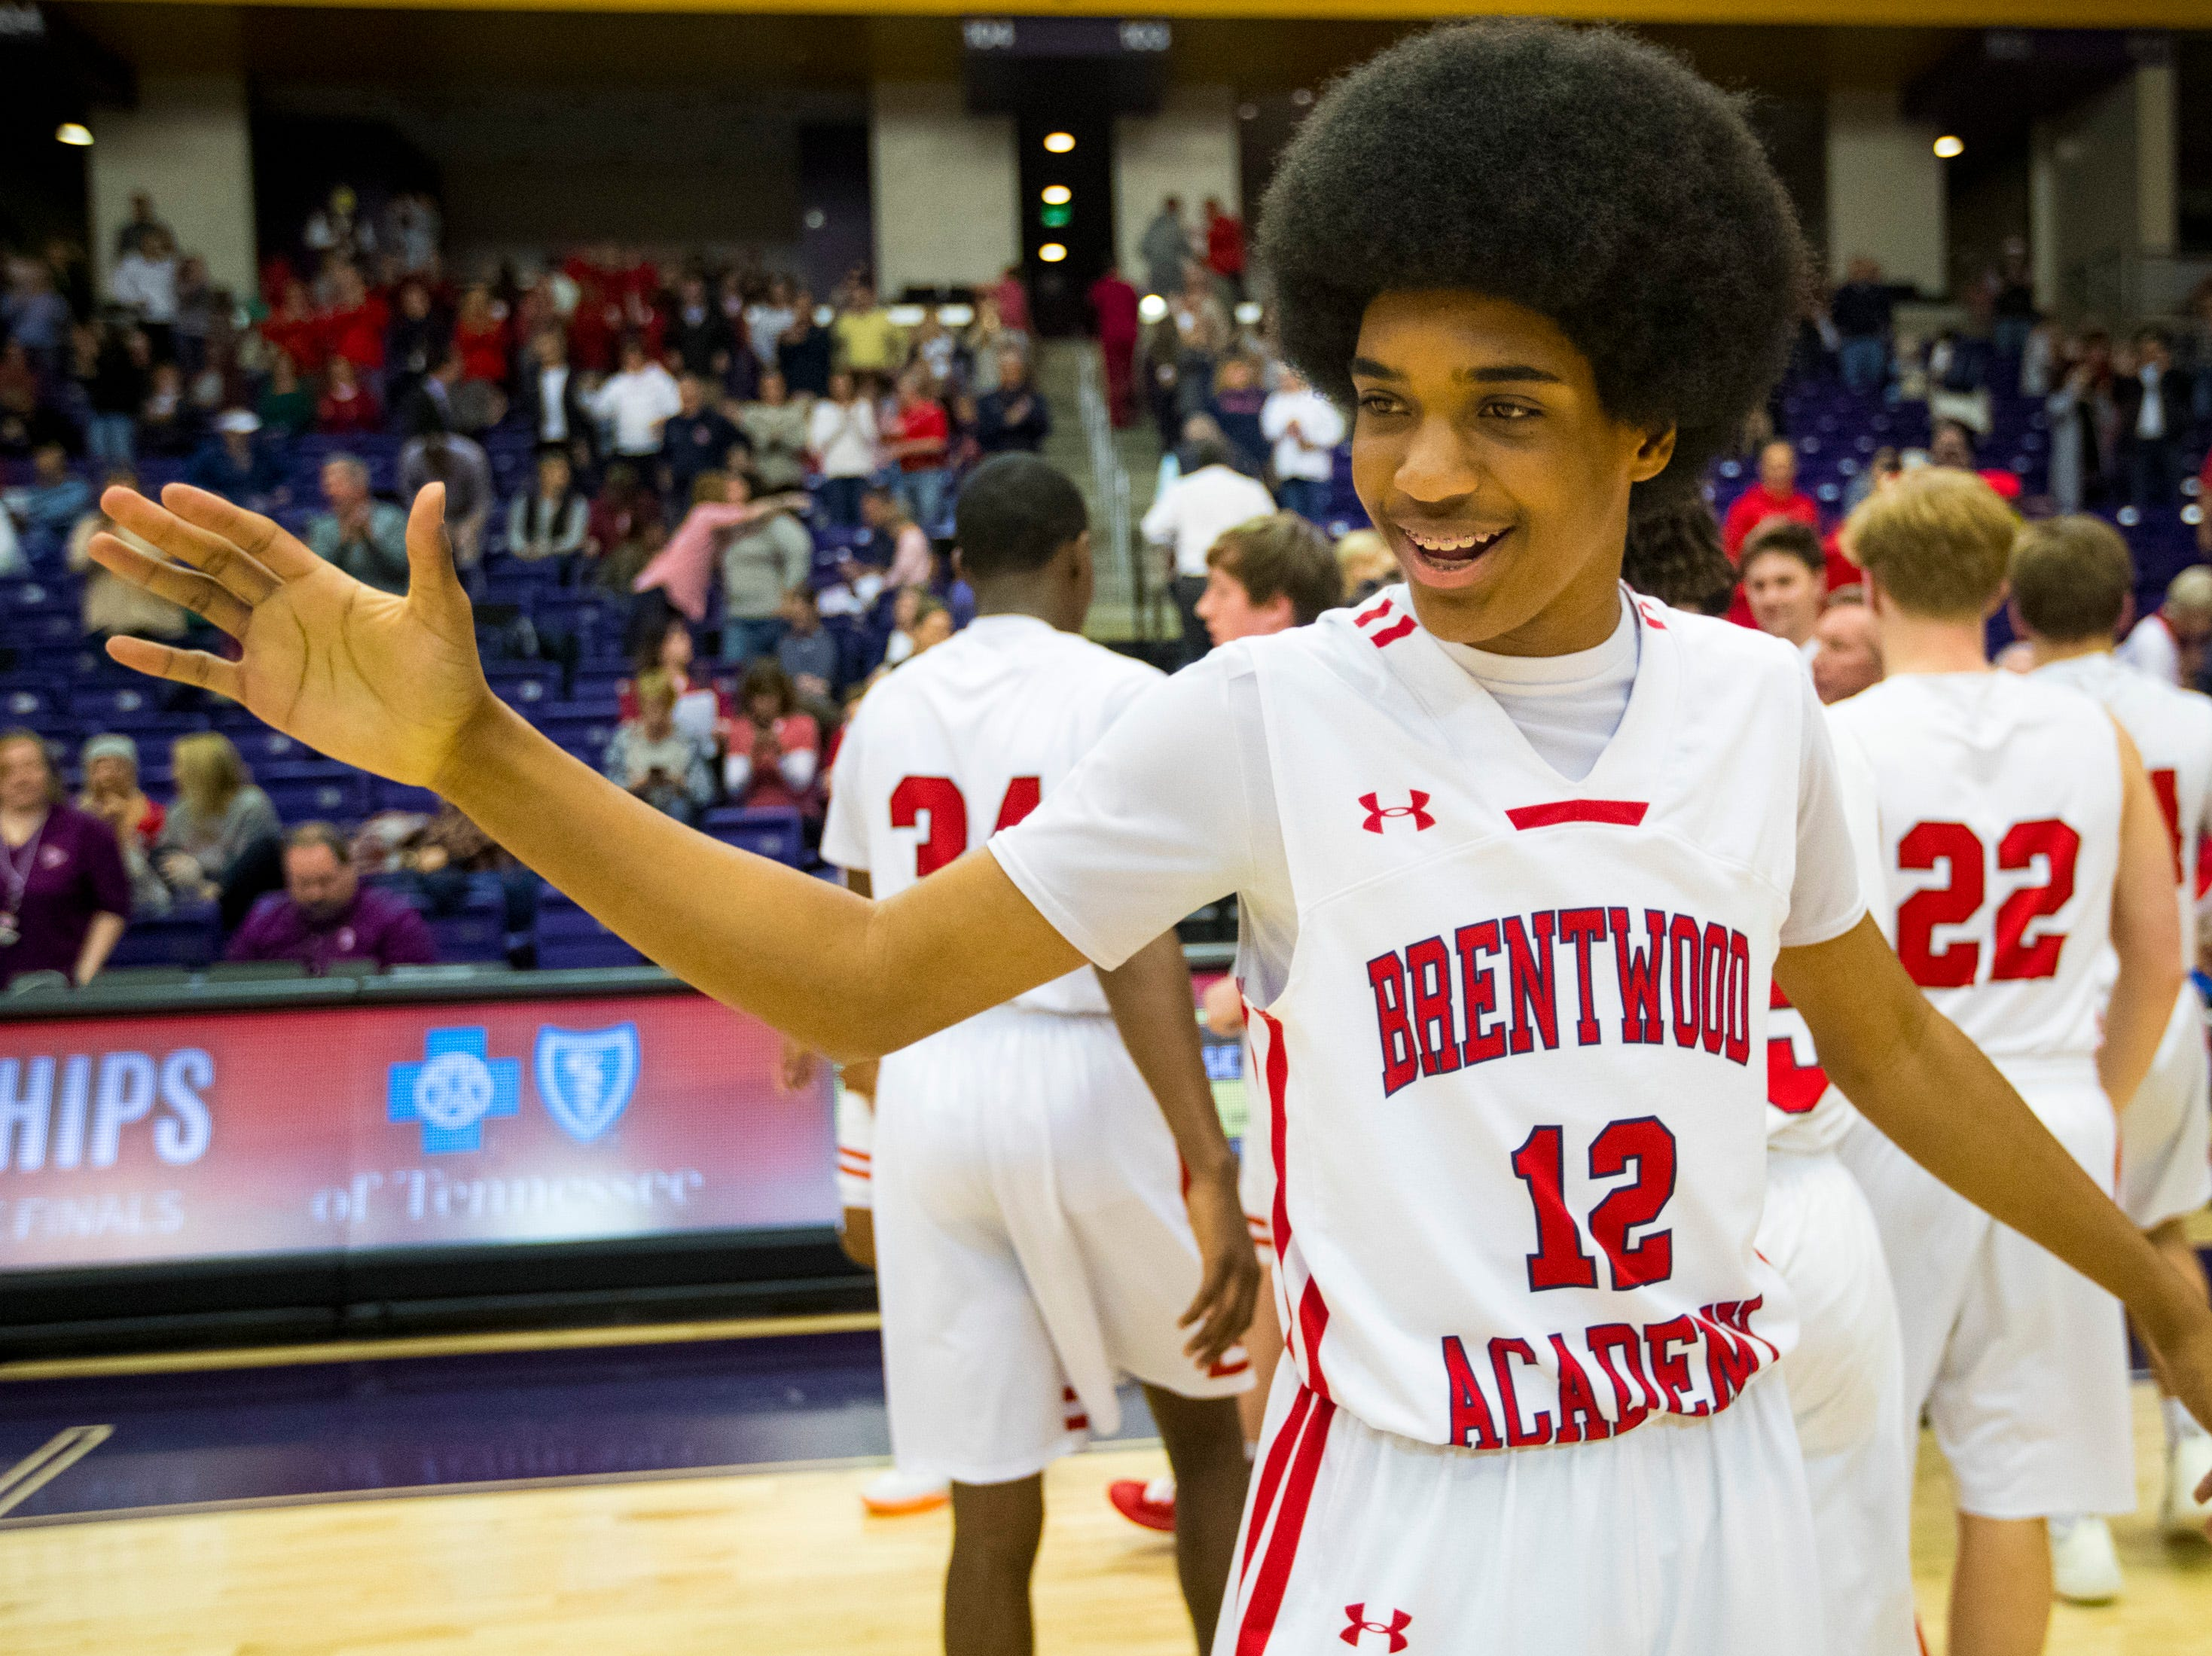 Brentwood Academy's Trent McNair (12) celebrates after Brentwood Academy's game against Baylor in the semifinal round of the TSSAA Division II Class AA State Championships at Lipscomb University's Allen Arena in Nashville on Thursday, Feb. 28, 2019.